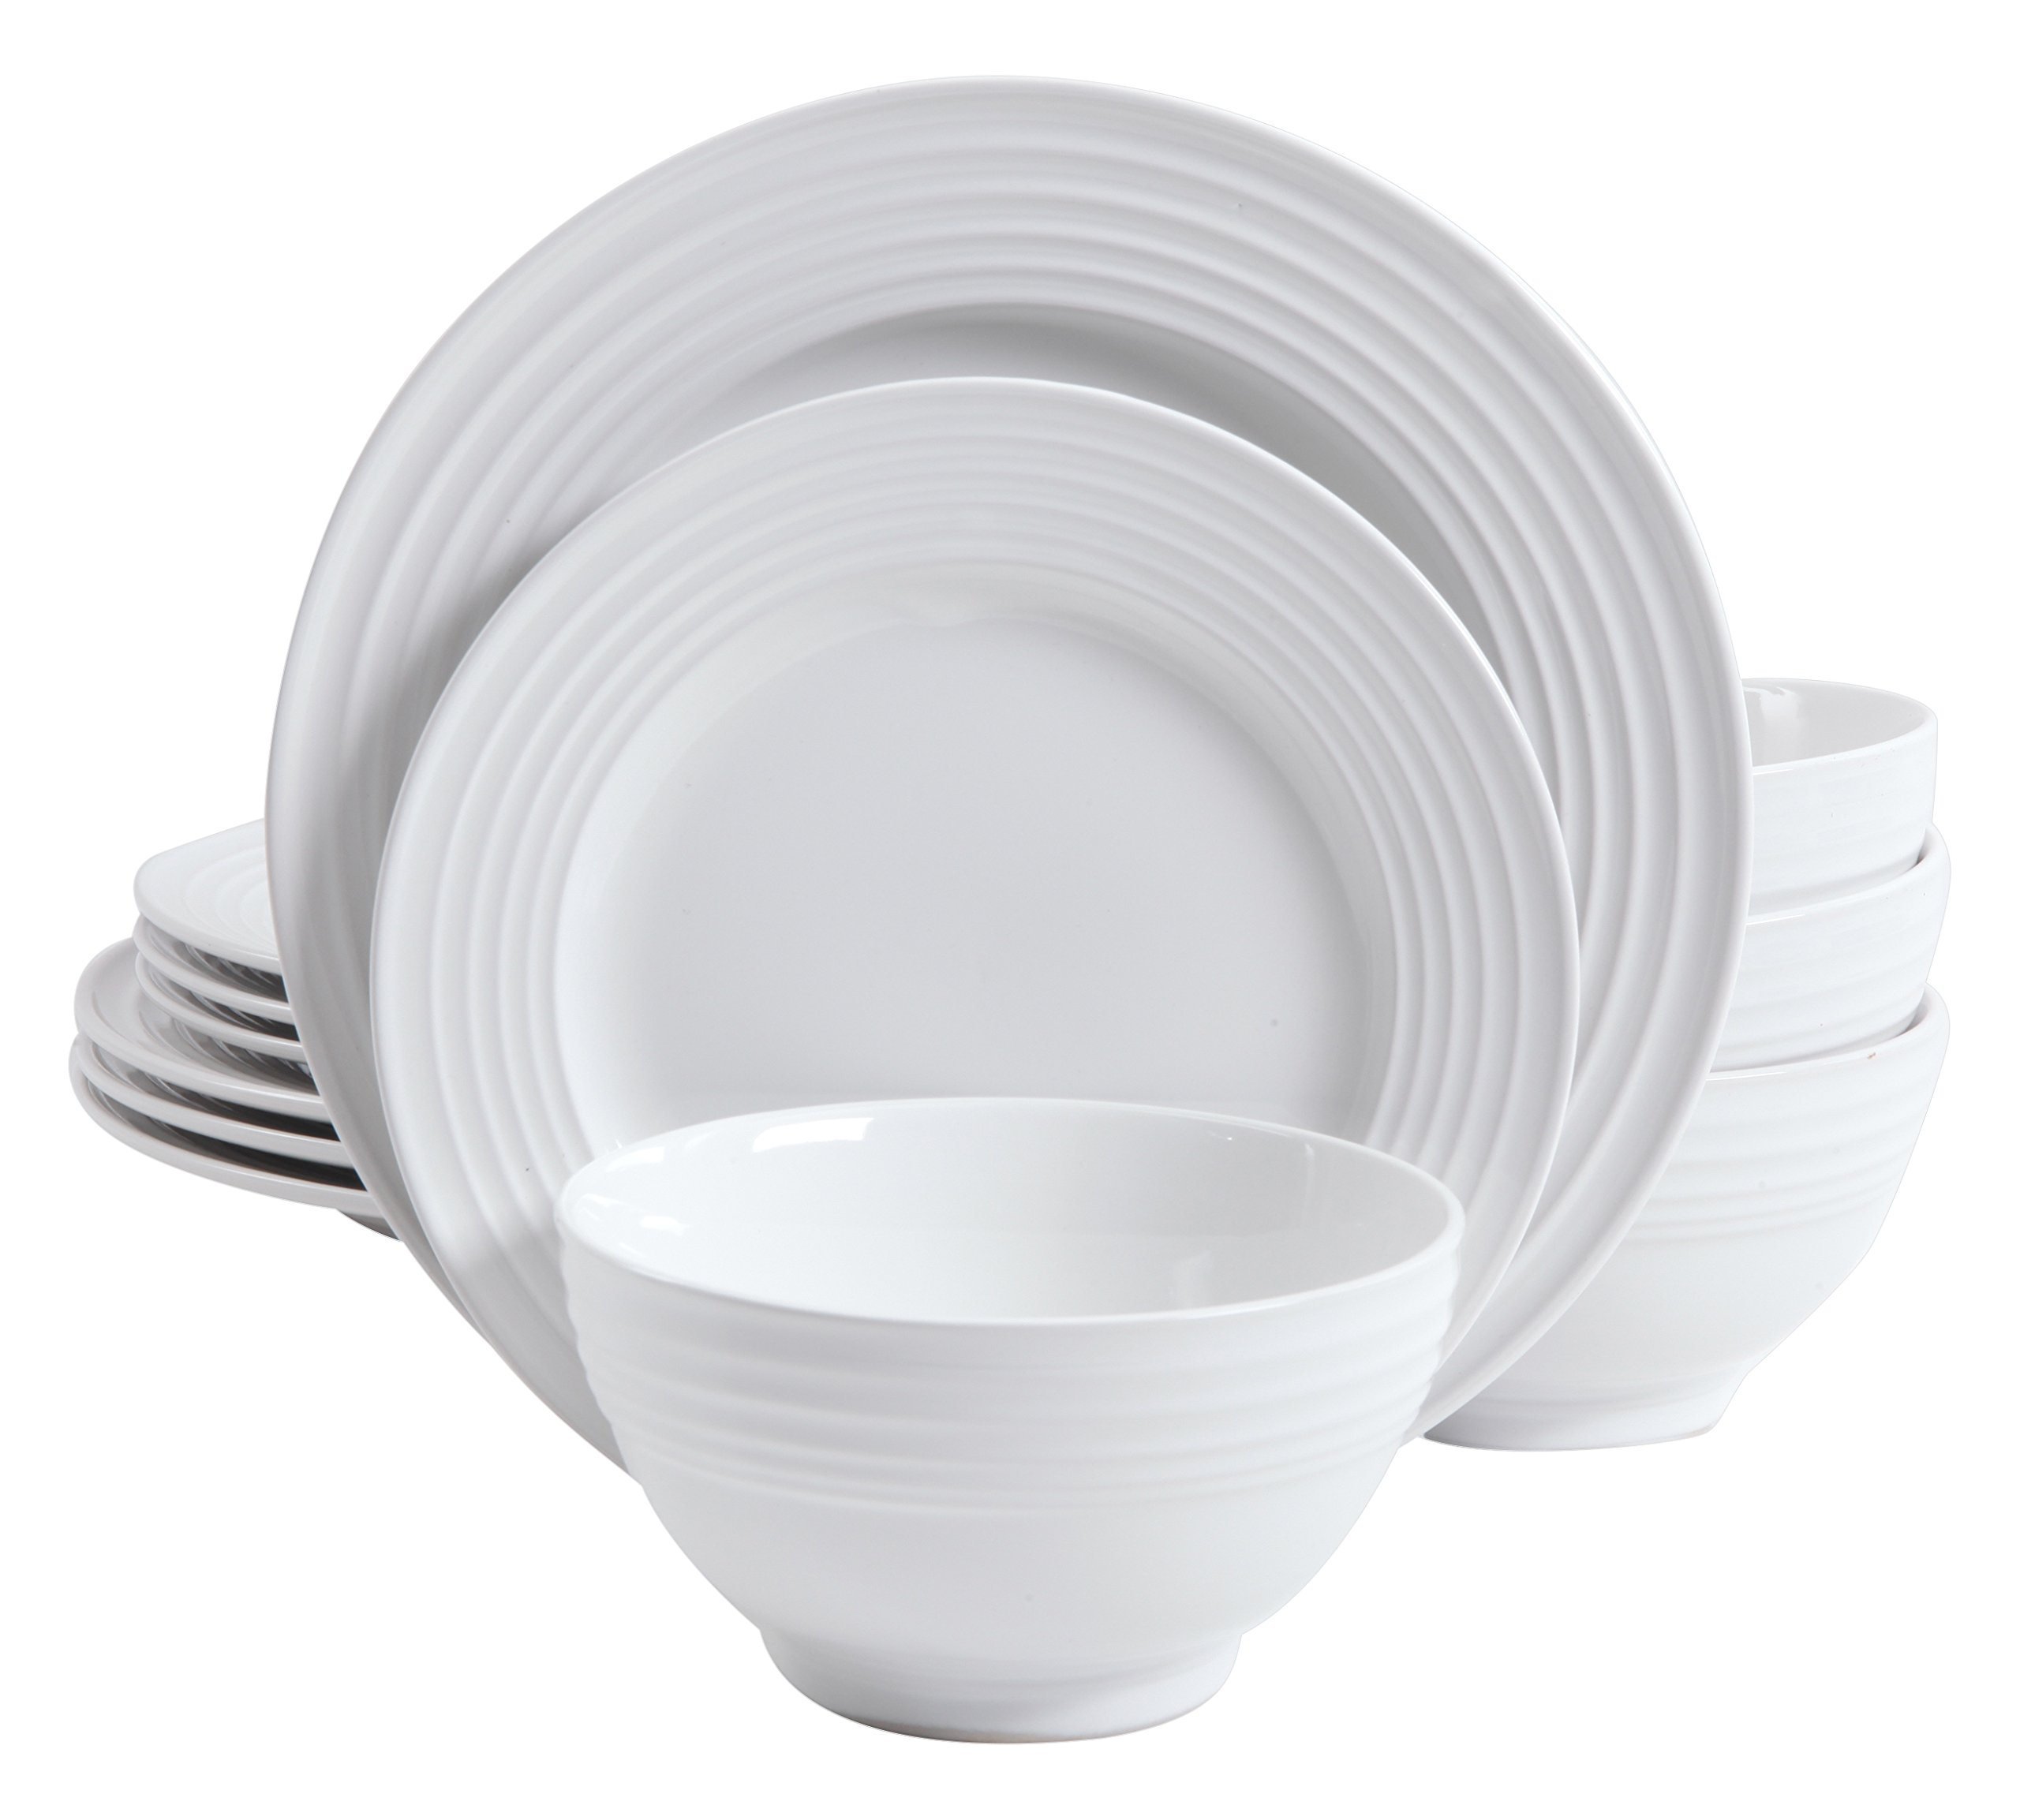 Gibson Home 12 Piece Plaza Cafe Round Dinnerware Set with Embossed Stoneware, White by Gibson Home (Image #1)